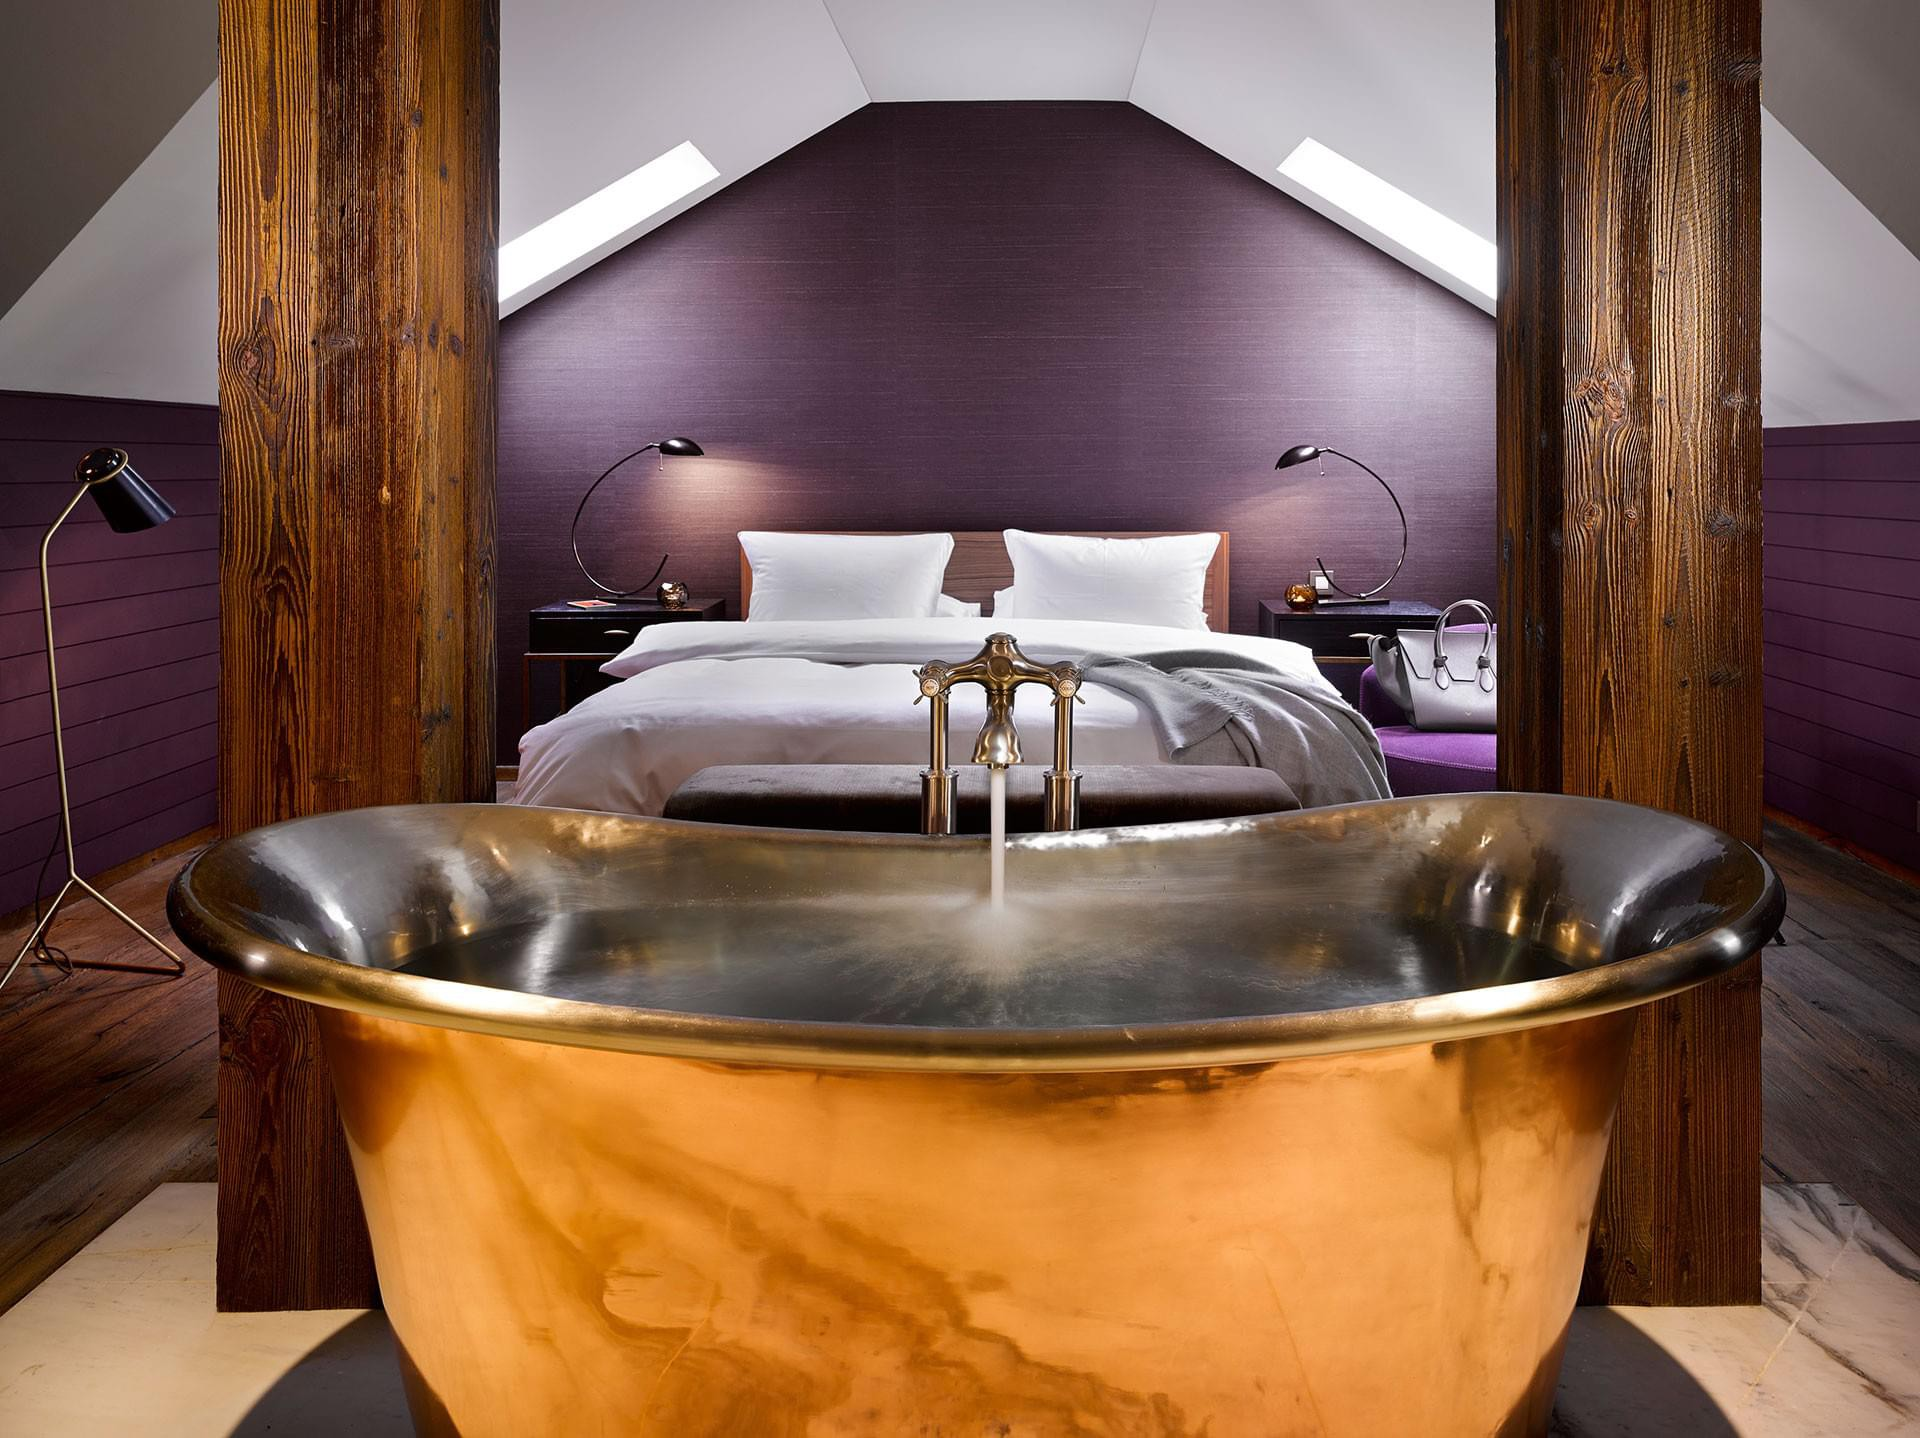 Rich shades of plum and copper make the suites at The Emblem Hotel feel luxuriously cosy